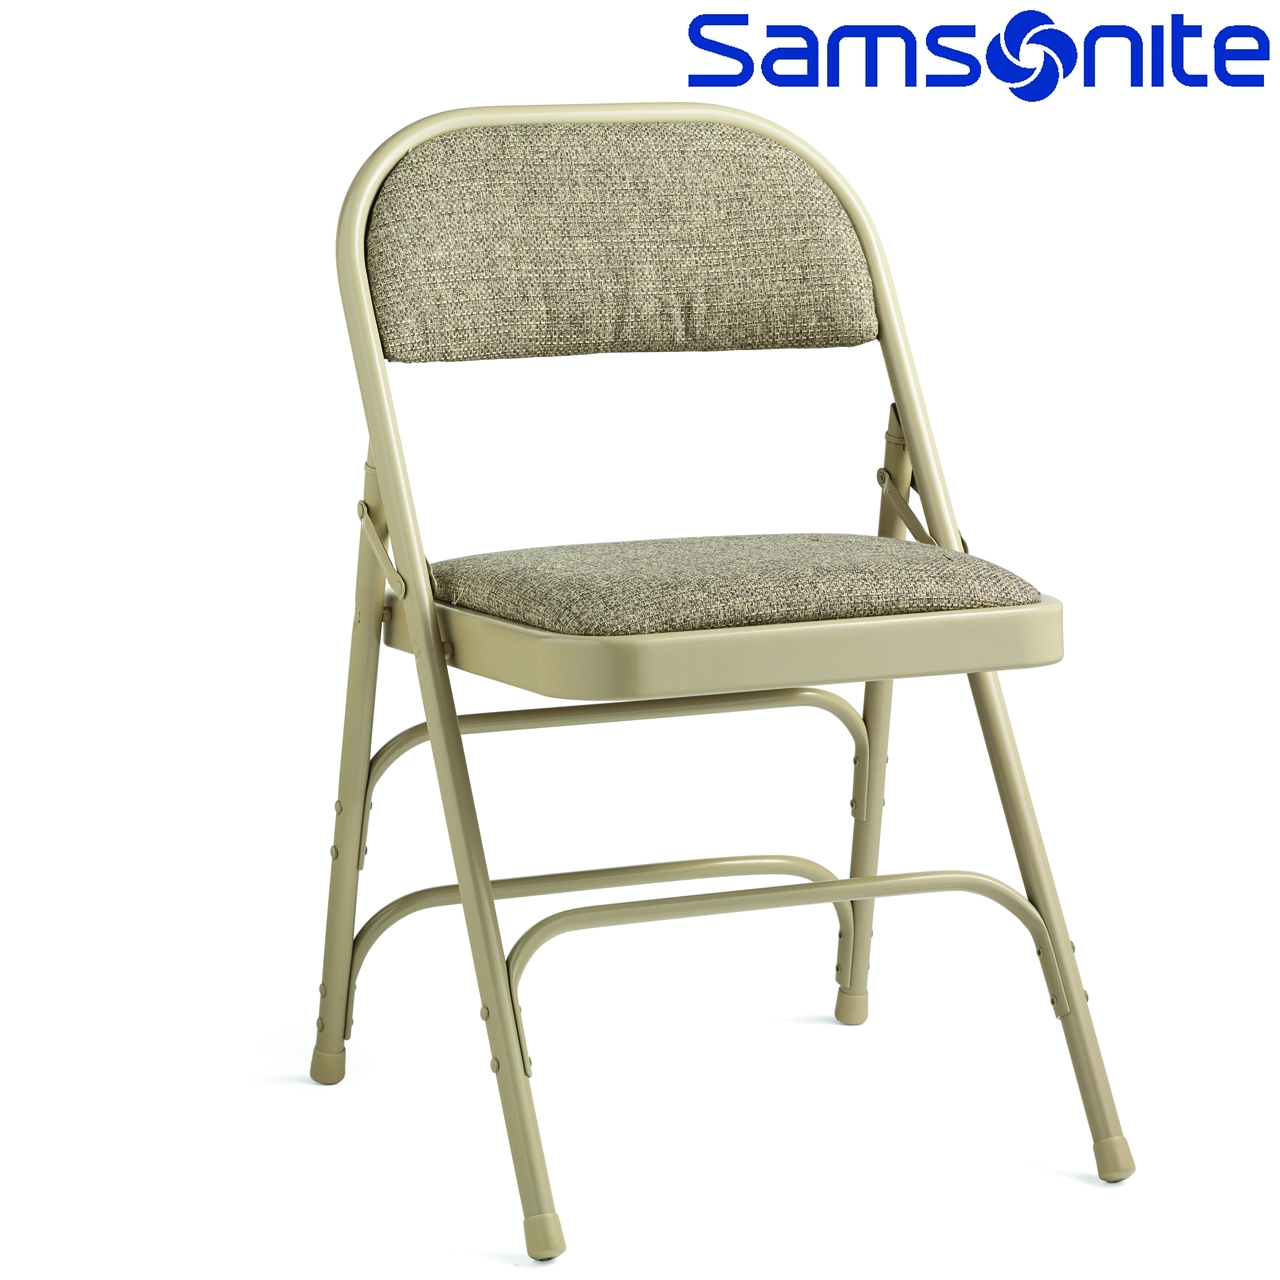 Timber Ridge Chairs Bjs Folding Lawn Chairs at Costco Best Home Chair Decoration